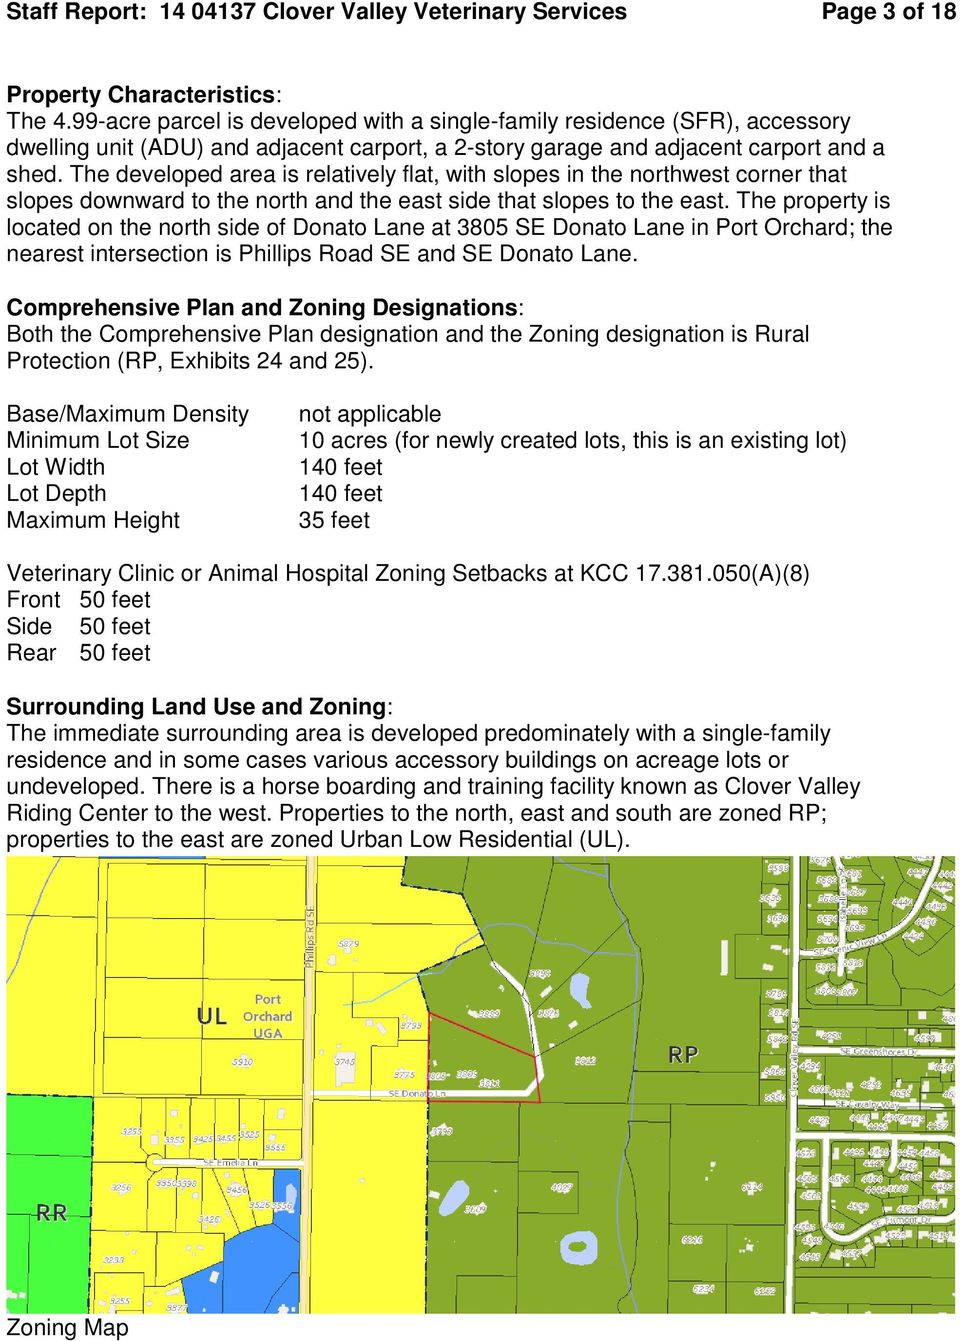 Staff report and information for the hearing examiner for Kitsap septic